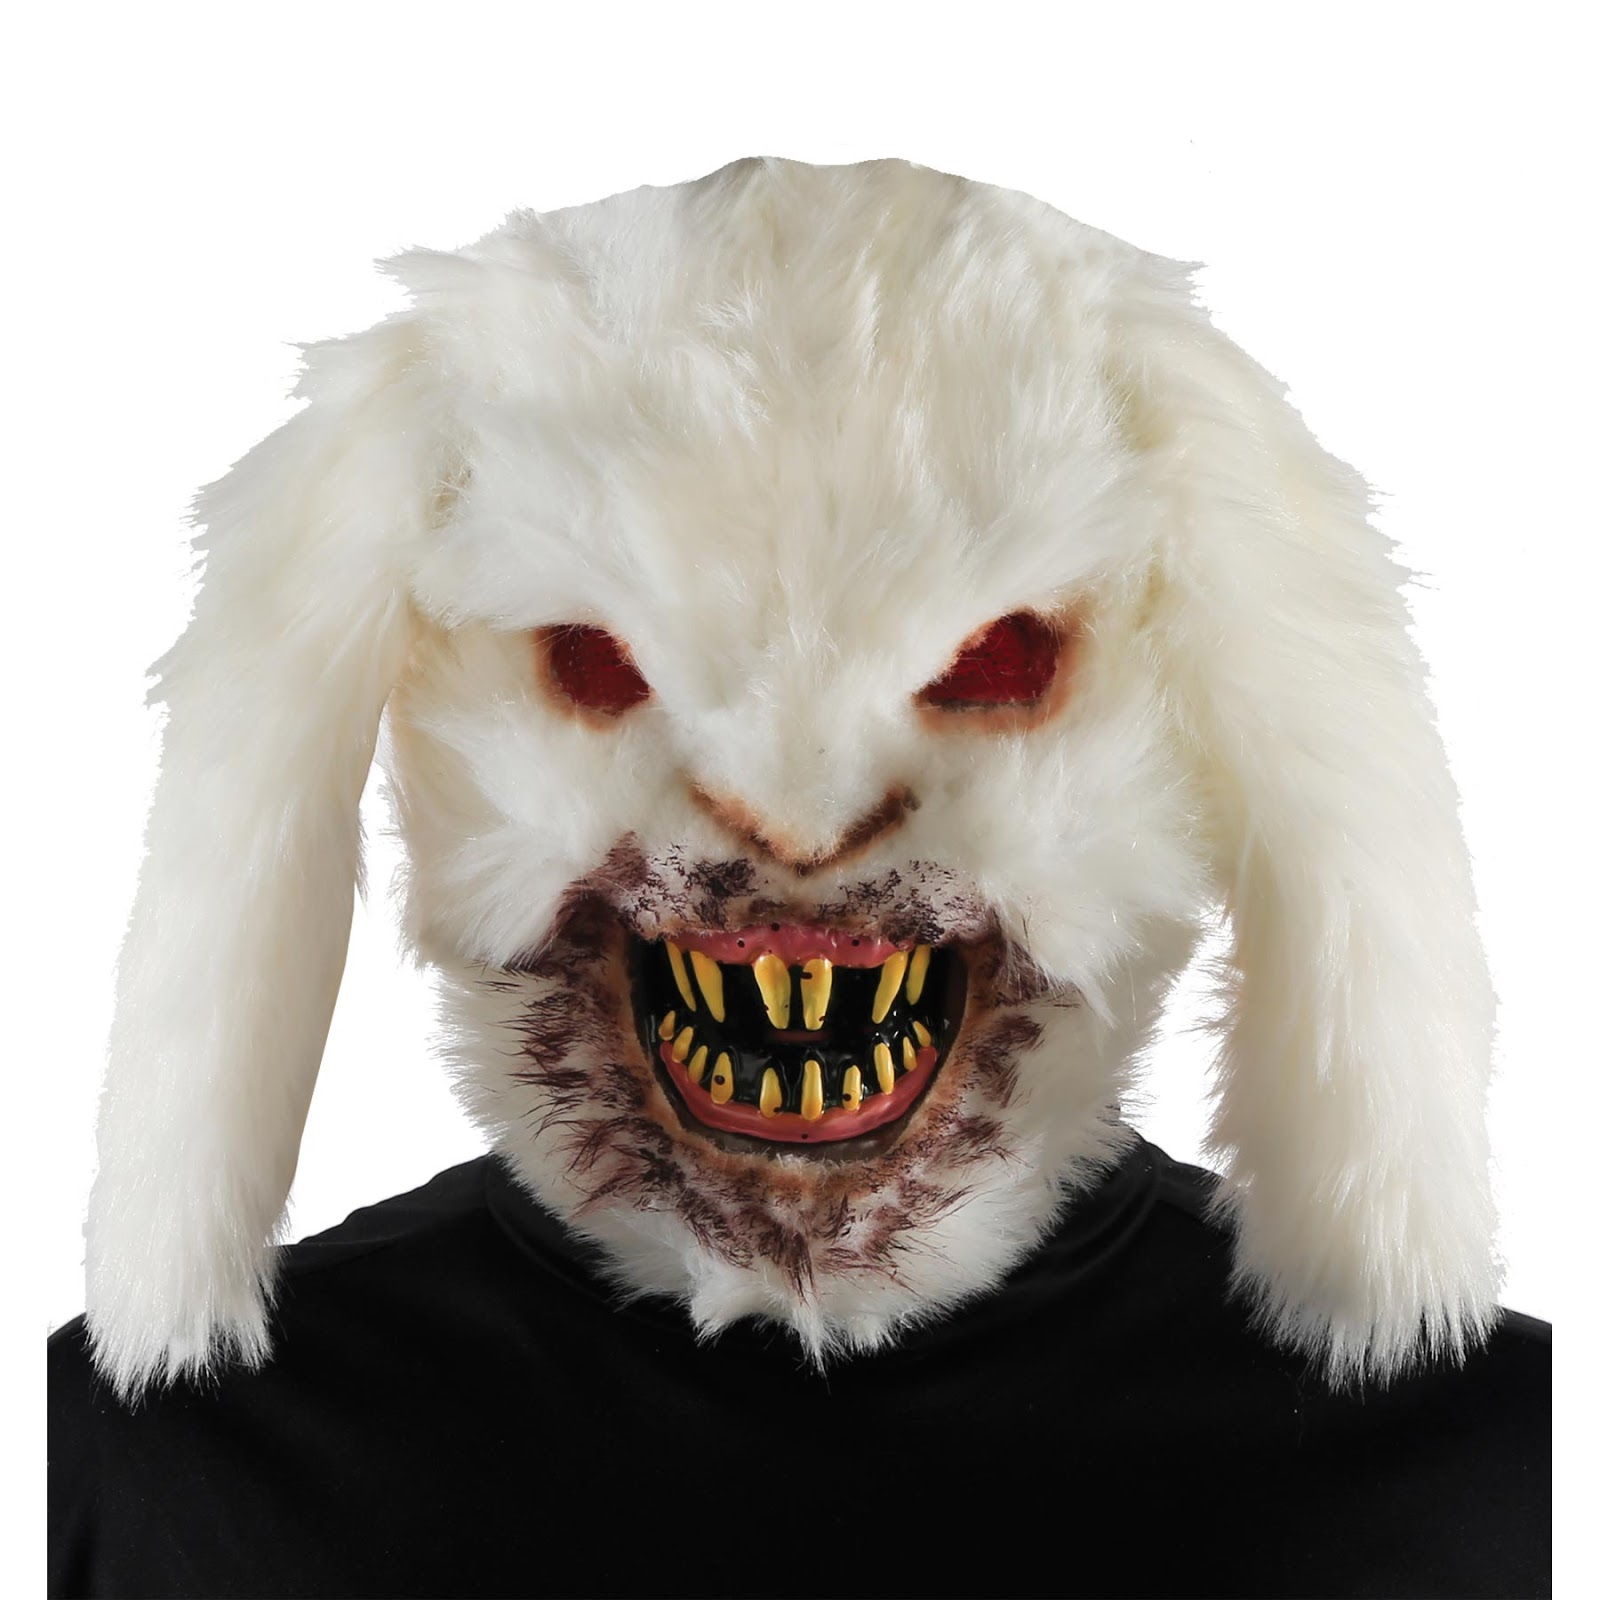 HORROR-HALL Gothic Cheap Halloween Props and Costume Accessories